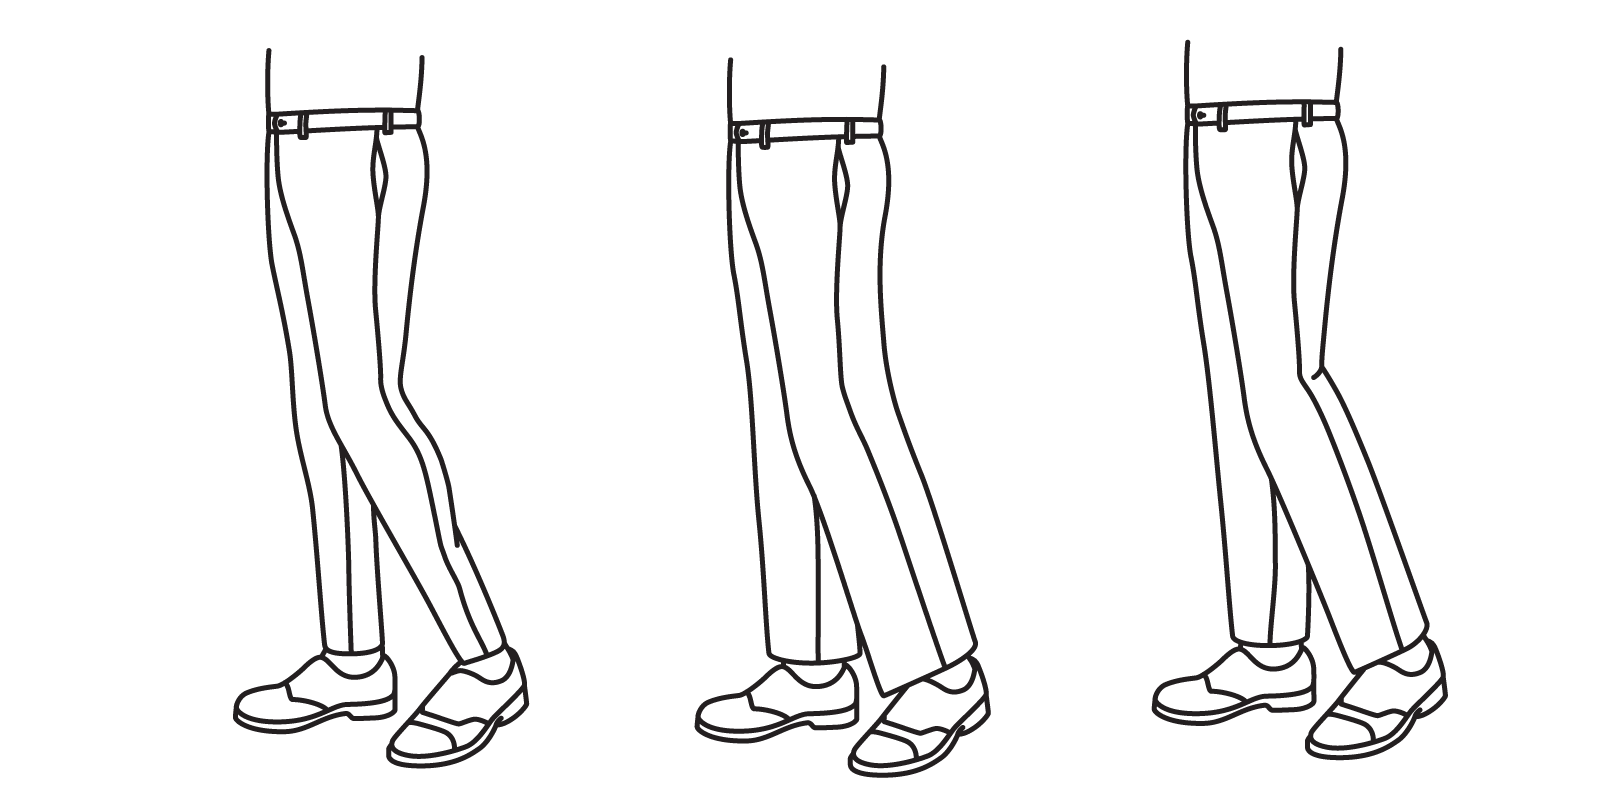 A taper that is too slim will strain against the calf (left), while a taper that is too loose will hide the shape of the leg entirely (center). The taper should be slimmer than the thigh without causing strain (right)